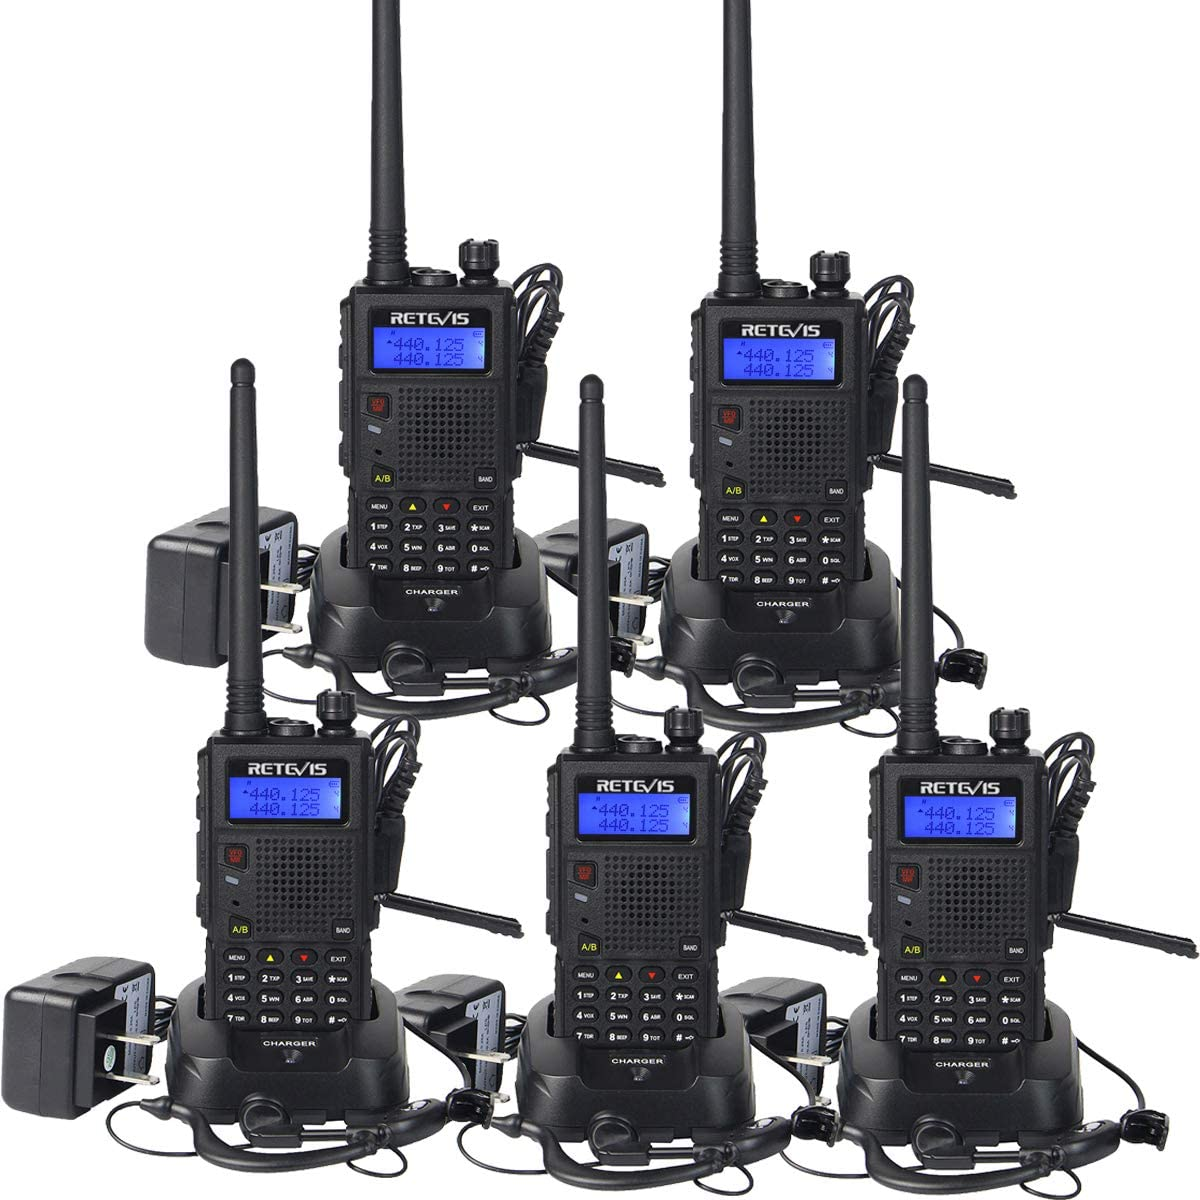 Retevis RT5 Two Way Radios 128 CH VHF UHF 2 Way Radios Hand Free Scan FM Walkie Takies 5 Pack with earpiece